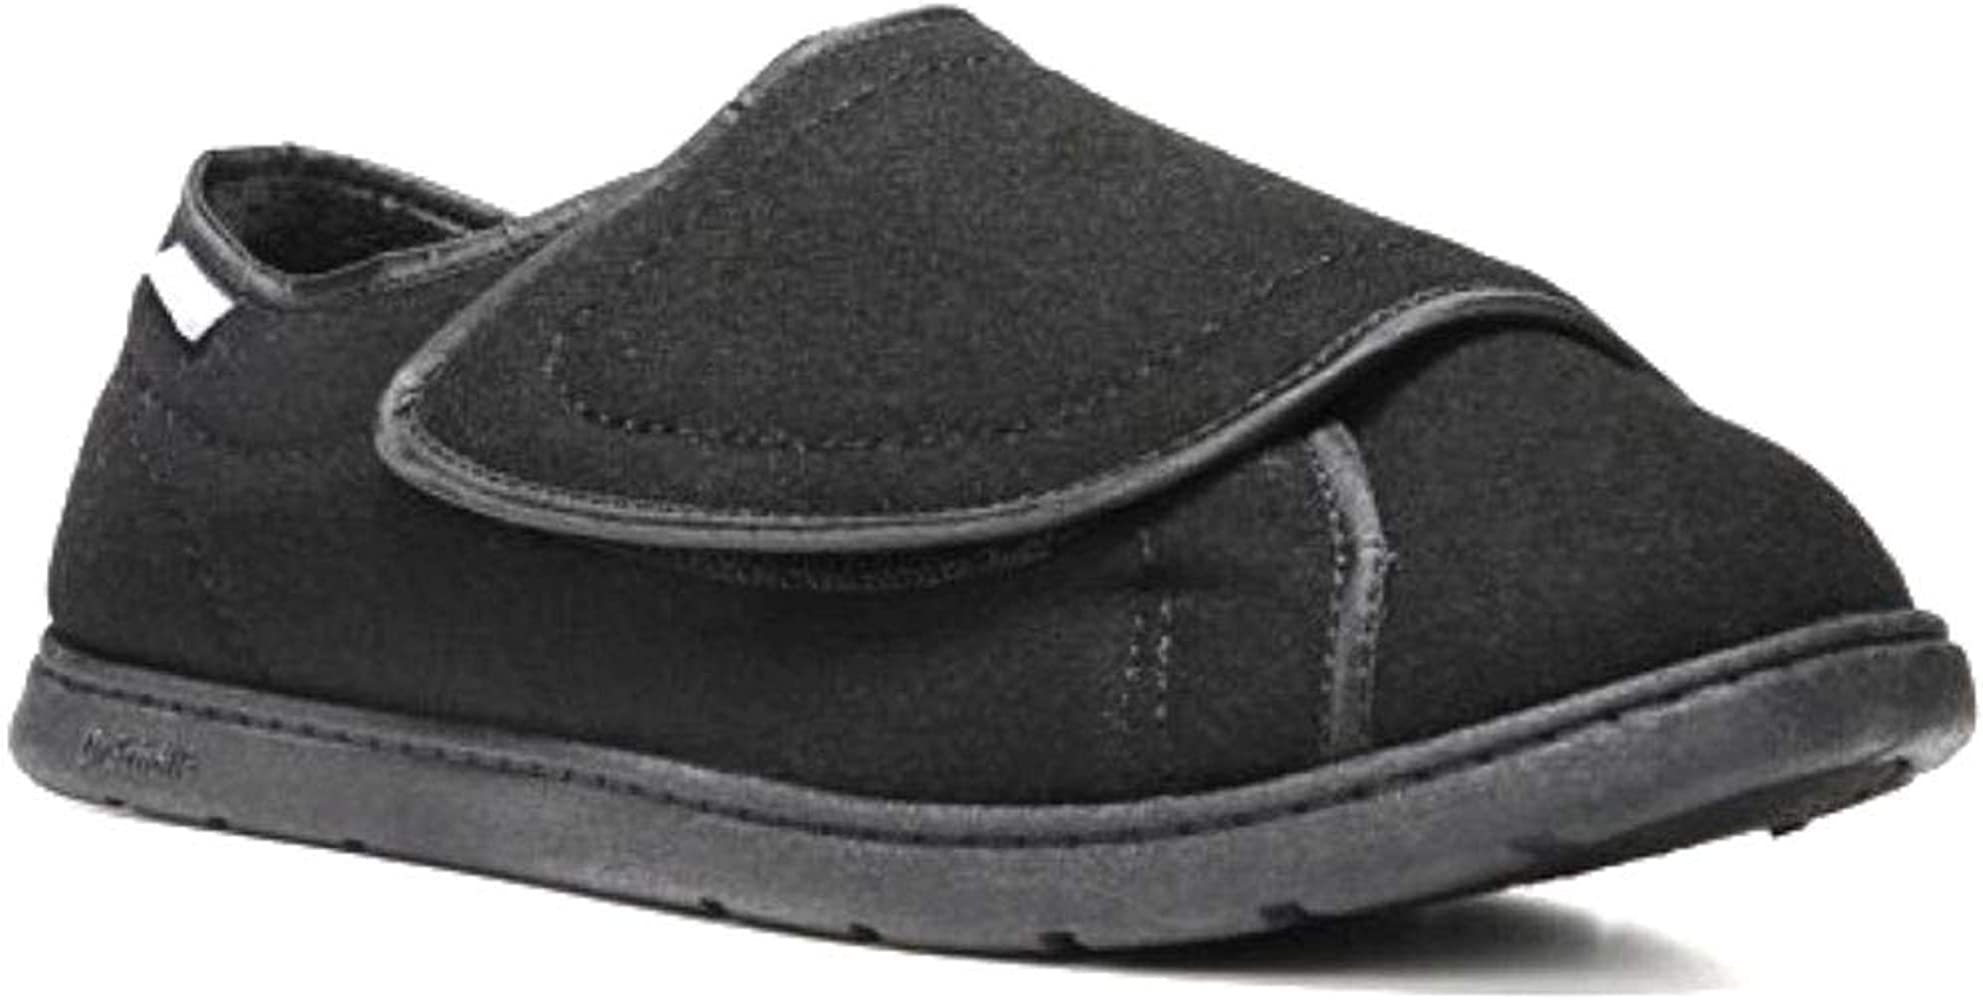 Flannery Wide Width Therapeutic Slipper